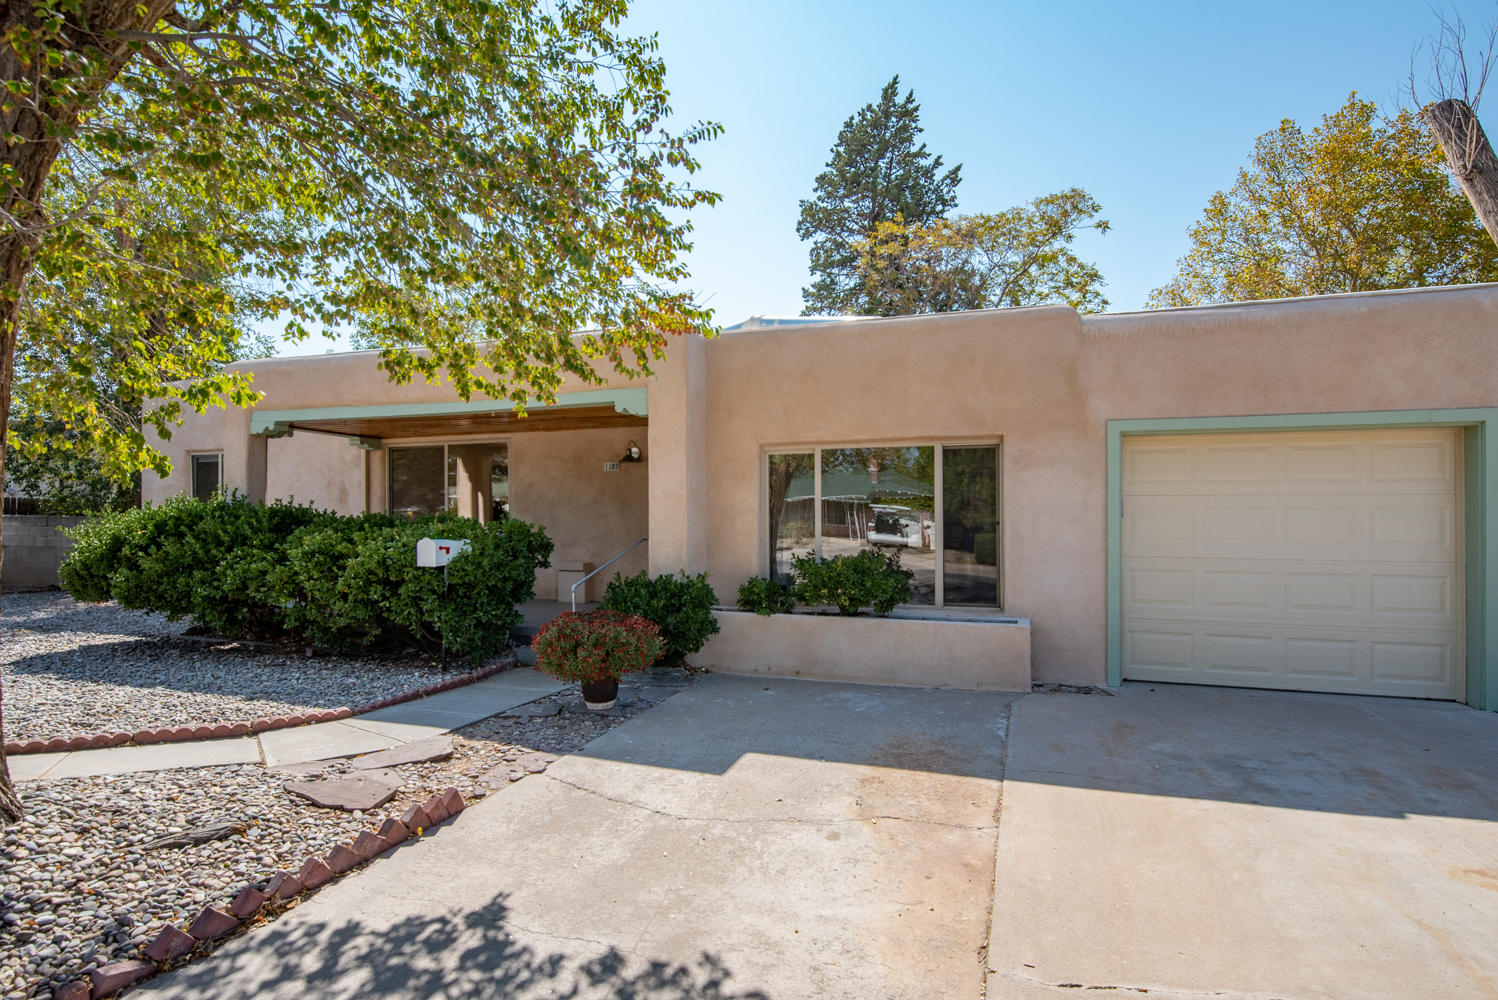 If you have more to do in life than fix up your house, come see this dramatic 3 bedroom, 1 3/4 bath home. Starting from the sprawling front porch step into the gleaming  refinished hardwood floors. Living room and dining room combination with lots of natural light. WOW... New amenities: Central forced air heat  & refrigerated air, total renovated bathrooms and a 3/4 shower was added. Renovate kitchen which includes  new appliances and the washer and dryer conveys. Electrical upgraded to 200 amp service. 3rd bedroom which was total renovated could be used as a den also with a custom wood burning fireplace. Look at the garage it has hollow tile and glass block. It could be used for a studio, home office or hobby room. Run don't walk to see these quality upgrades. Get walking area & park.